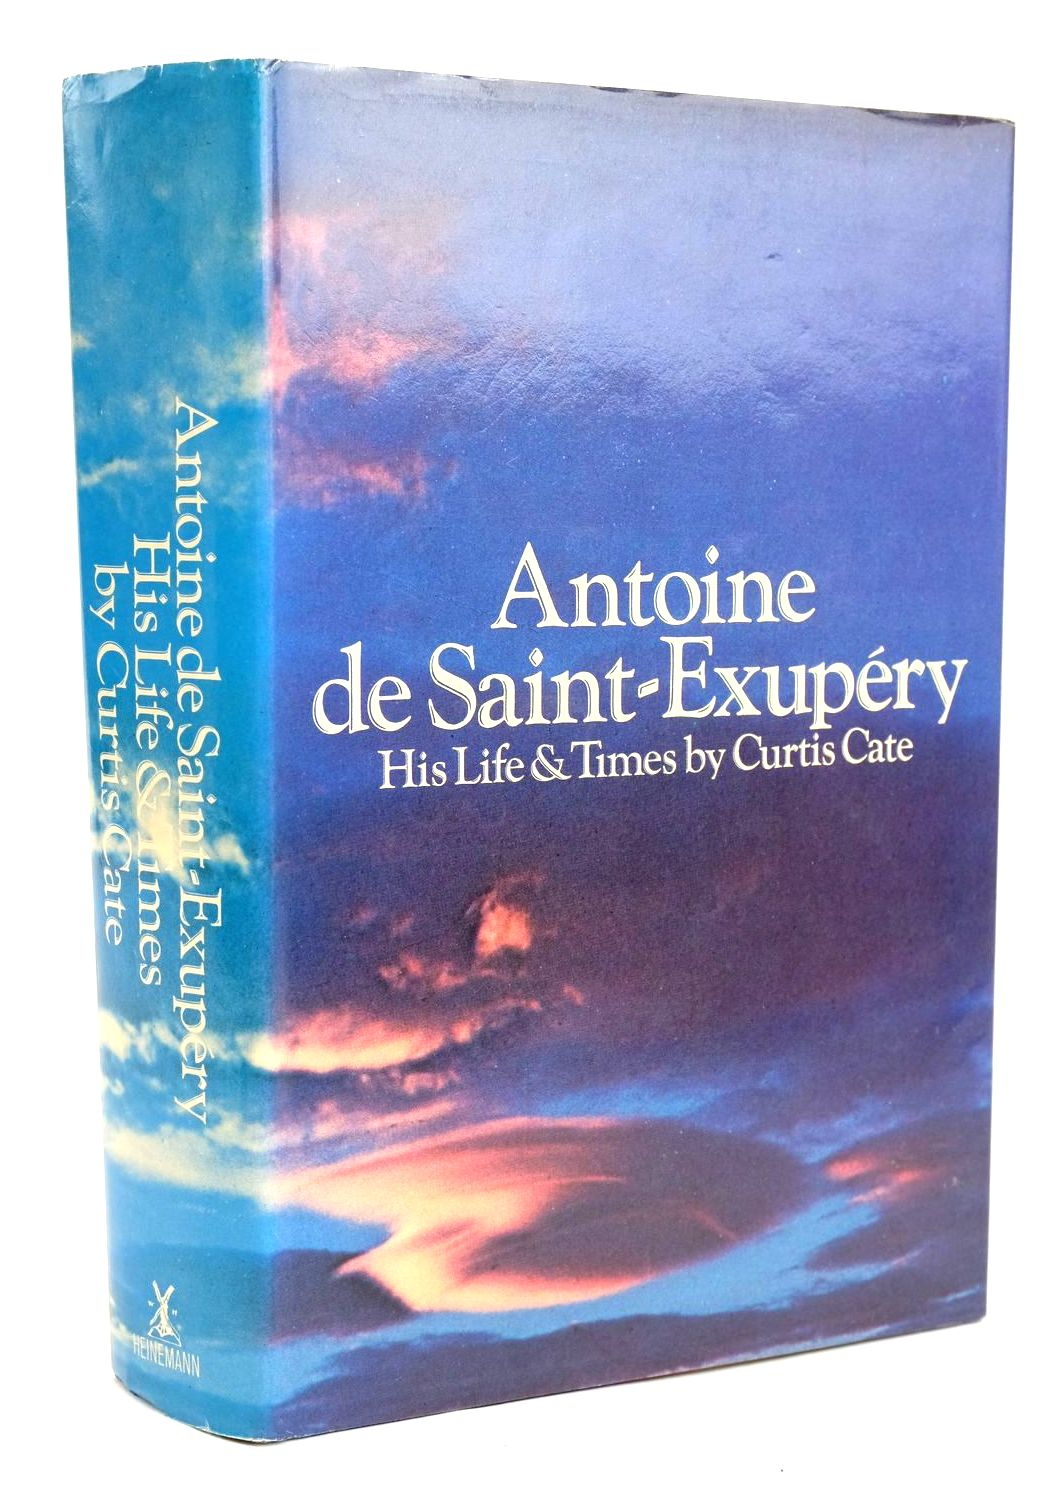 Photo of ANTOINE DE SAINT-EXUPERY HIS LIFE AND TIMES written by Cate, Curtis published by William Heinemann Ltd. (STOCK CODE: 1319600)  for sale by Stella & Rose's Books